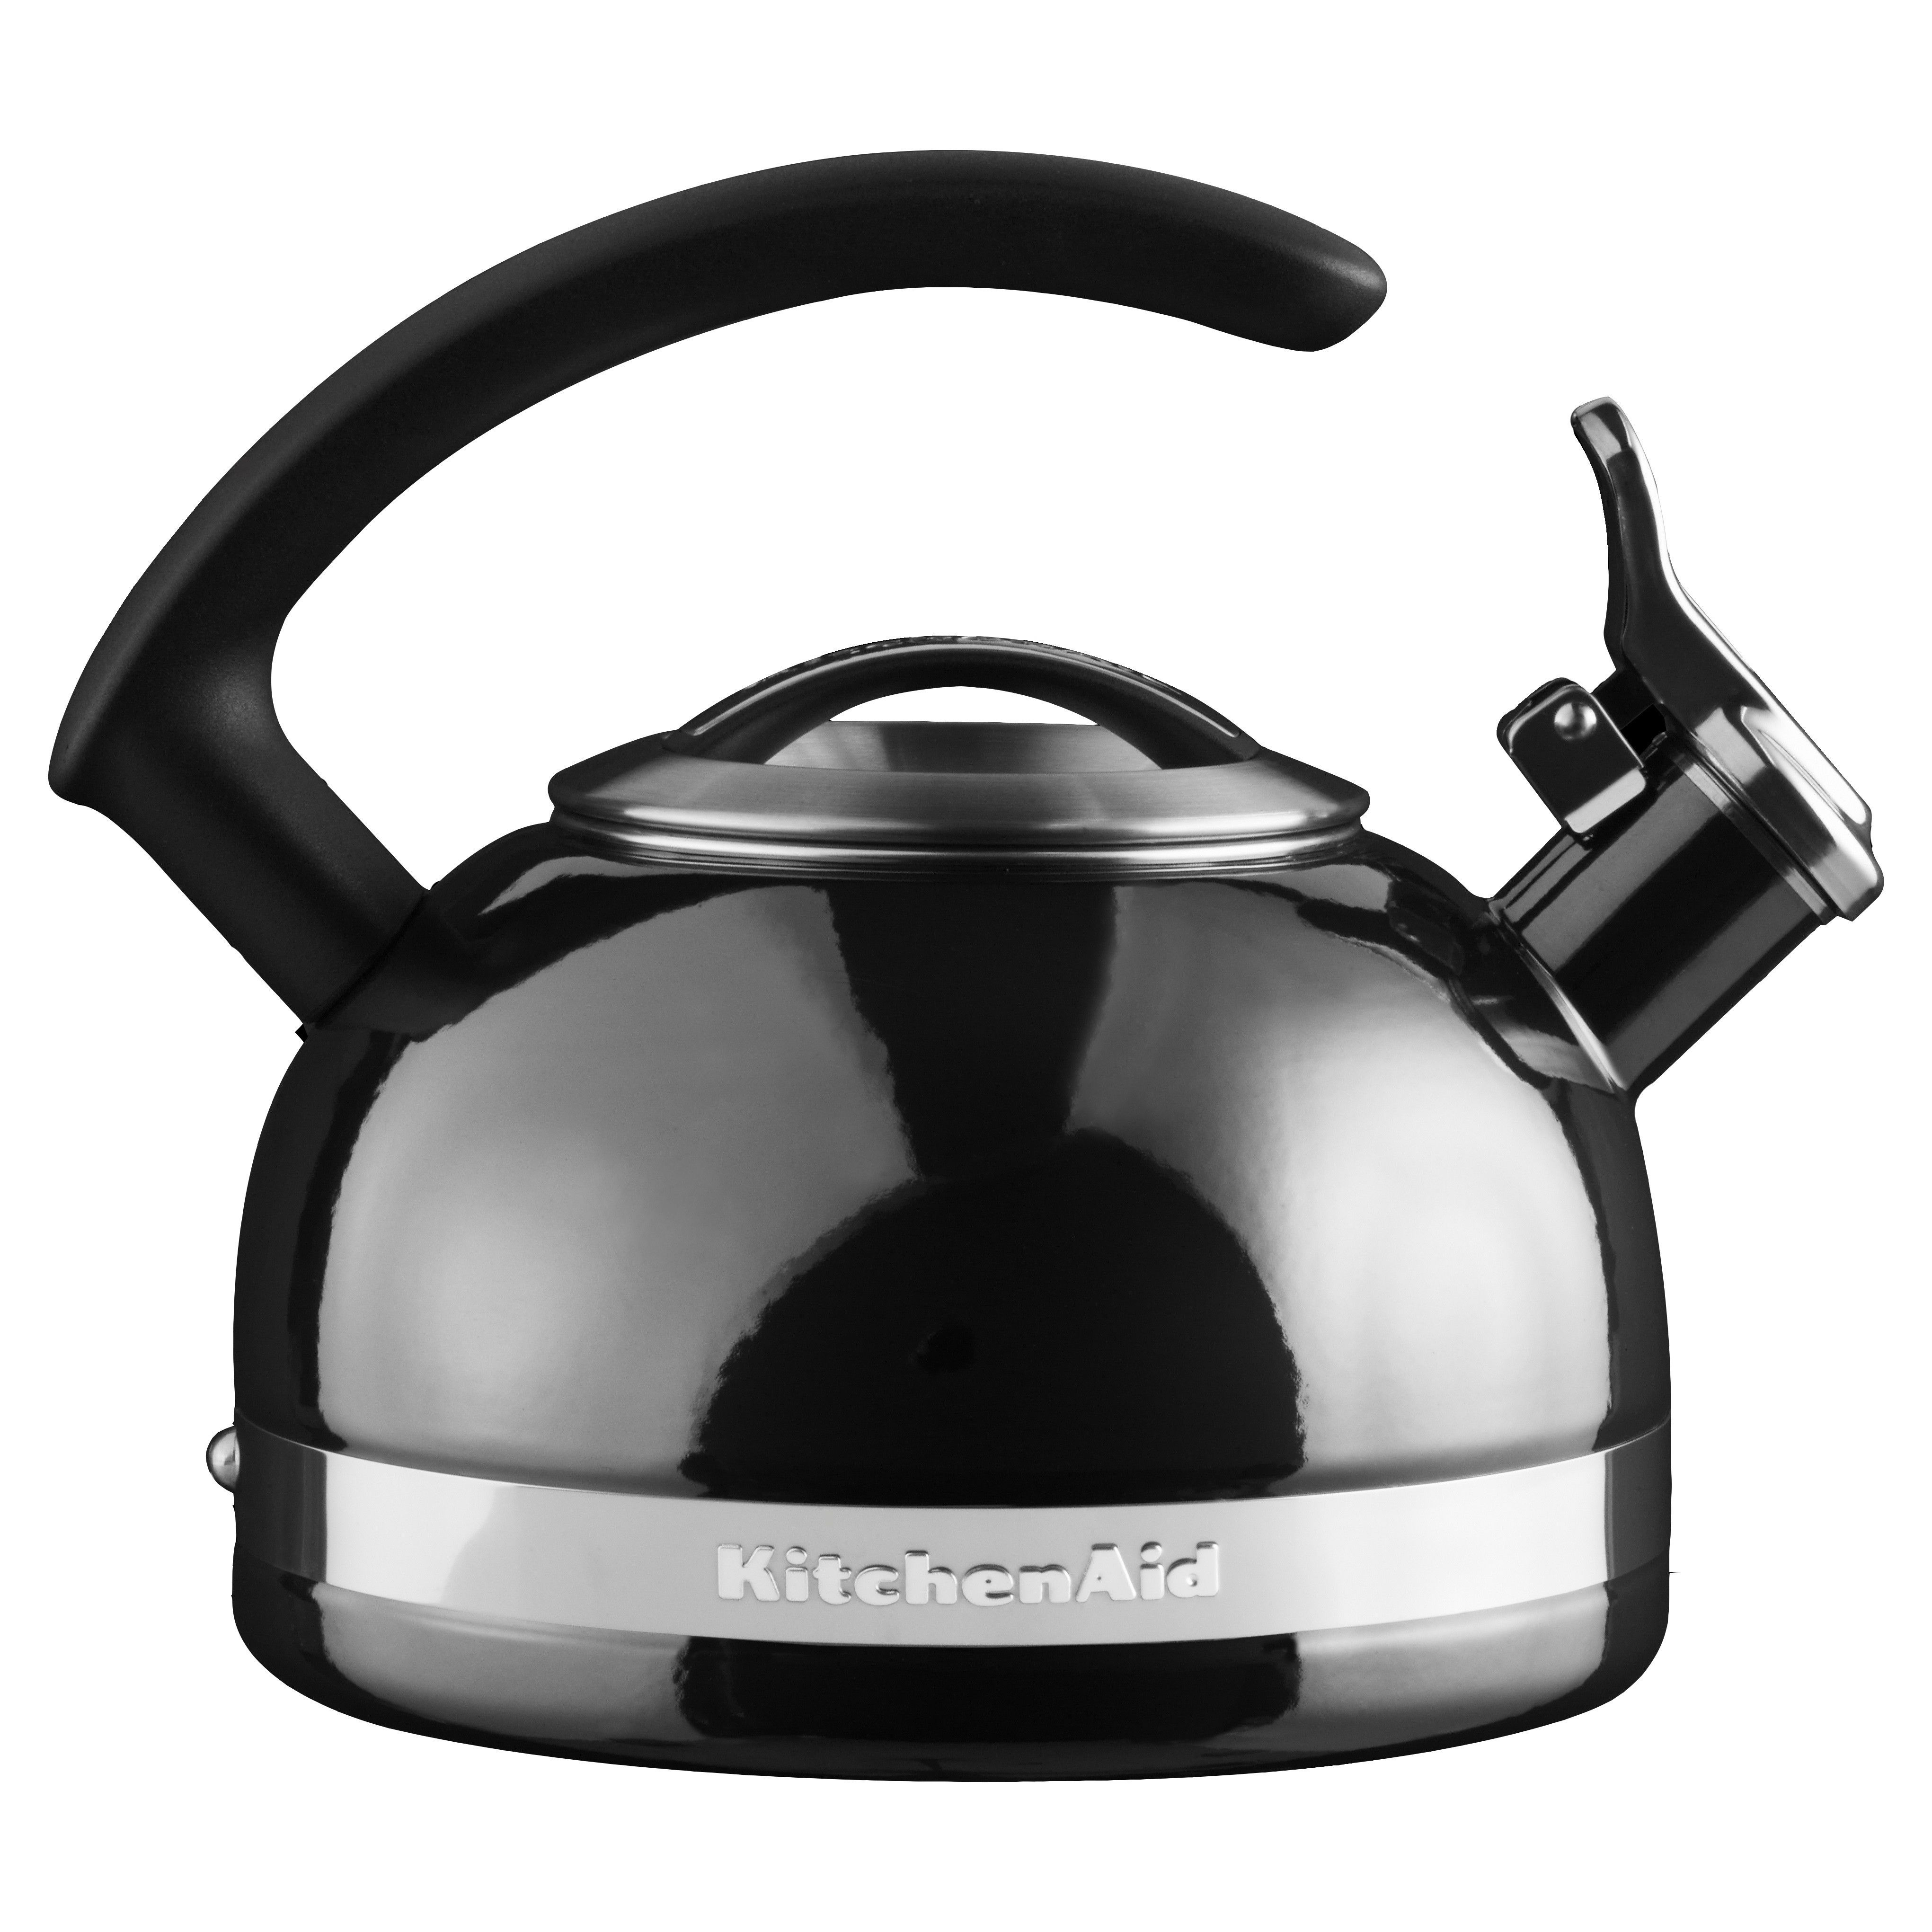 Customer image zoomed kitchen aid kettle stovetop kettle